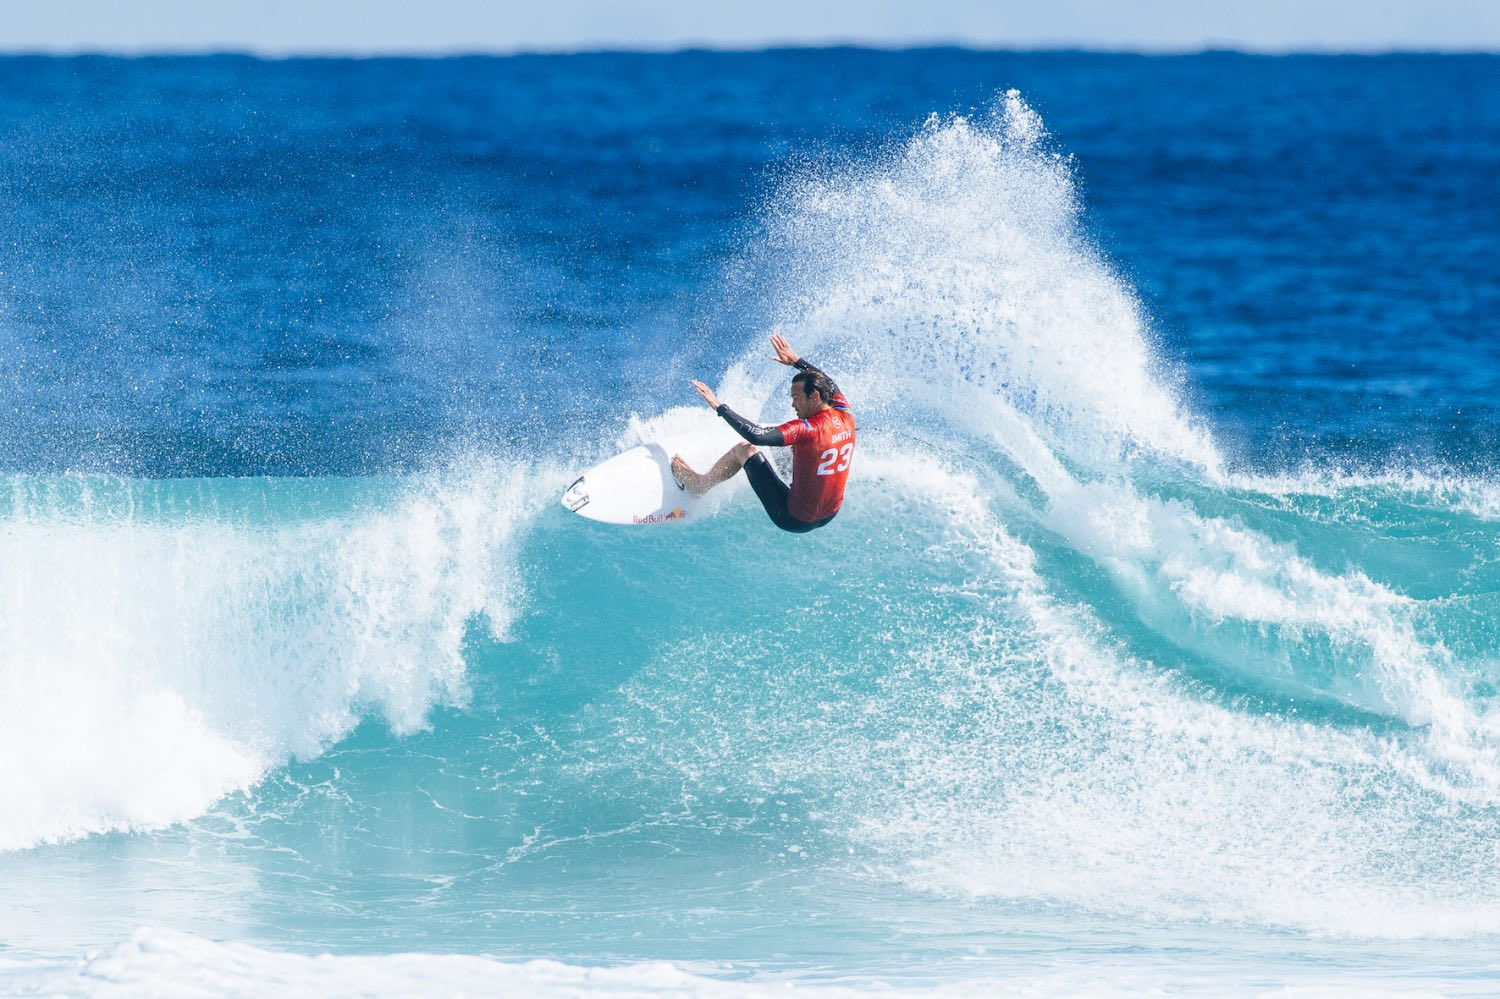 Jordy Smith finished 2nd at the Boost Mobile Margaret River Pro surfing contest